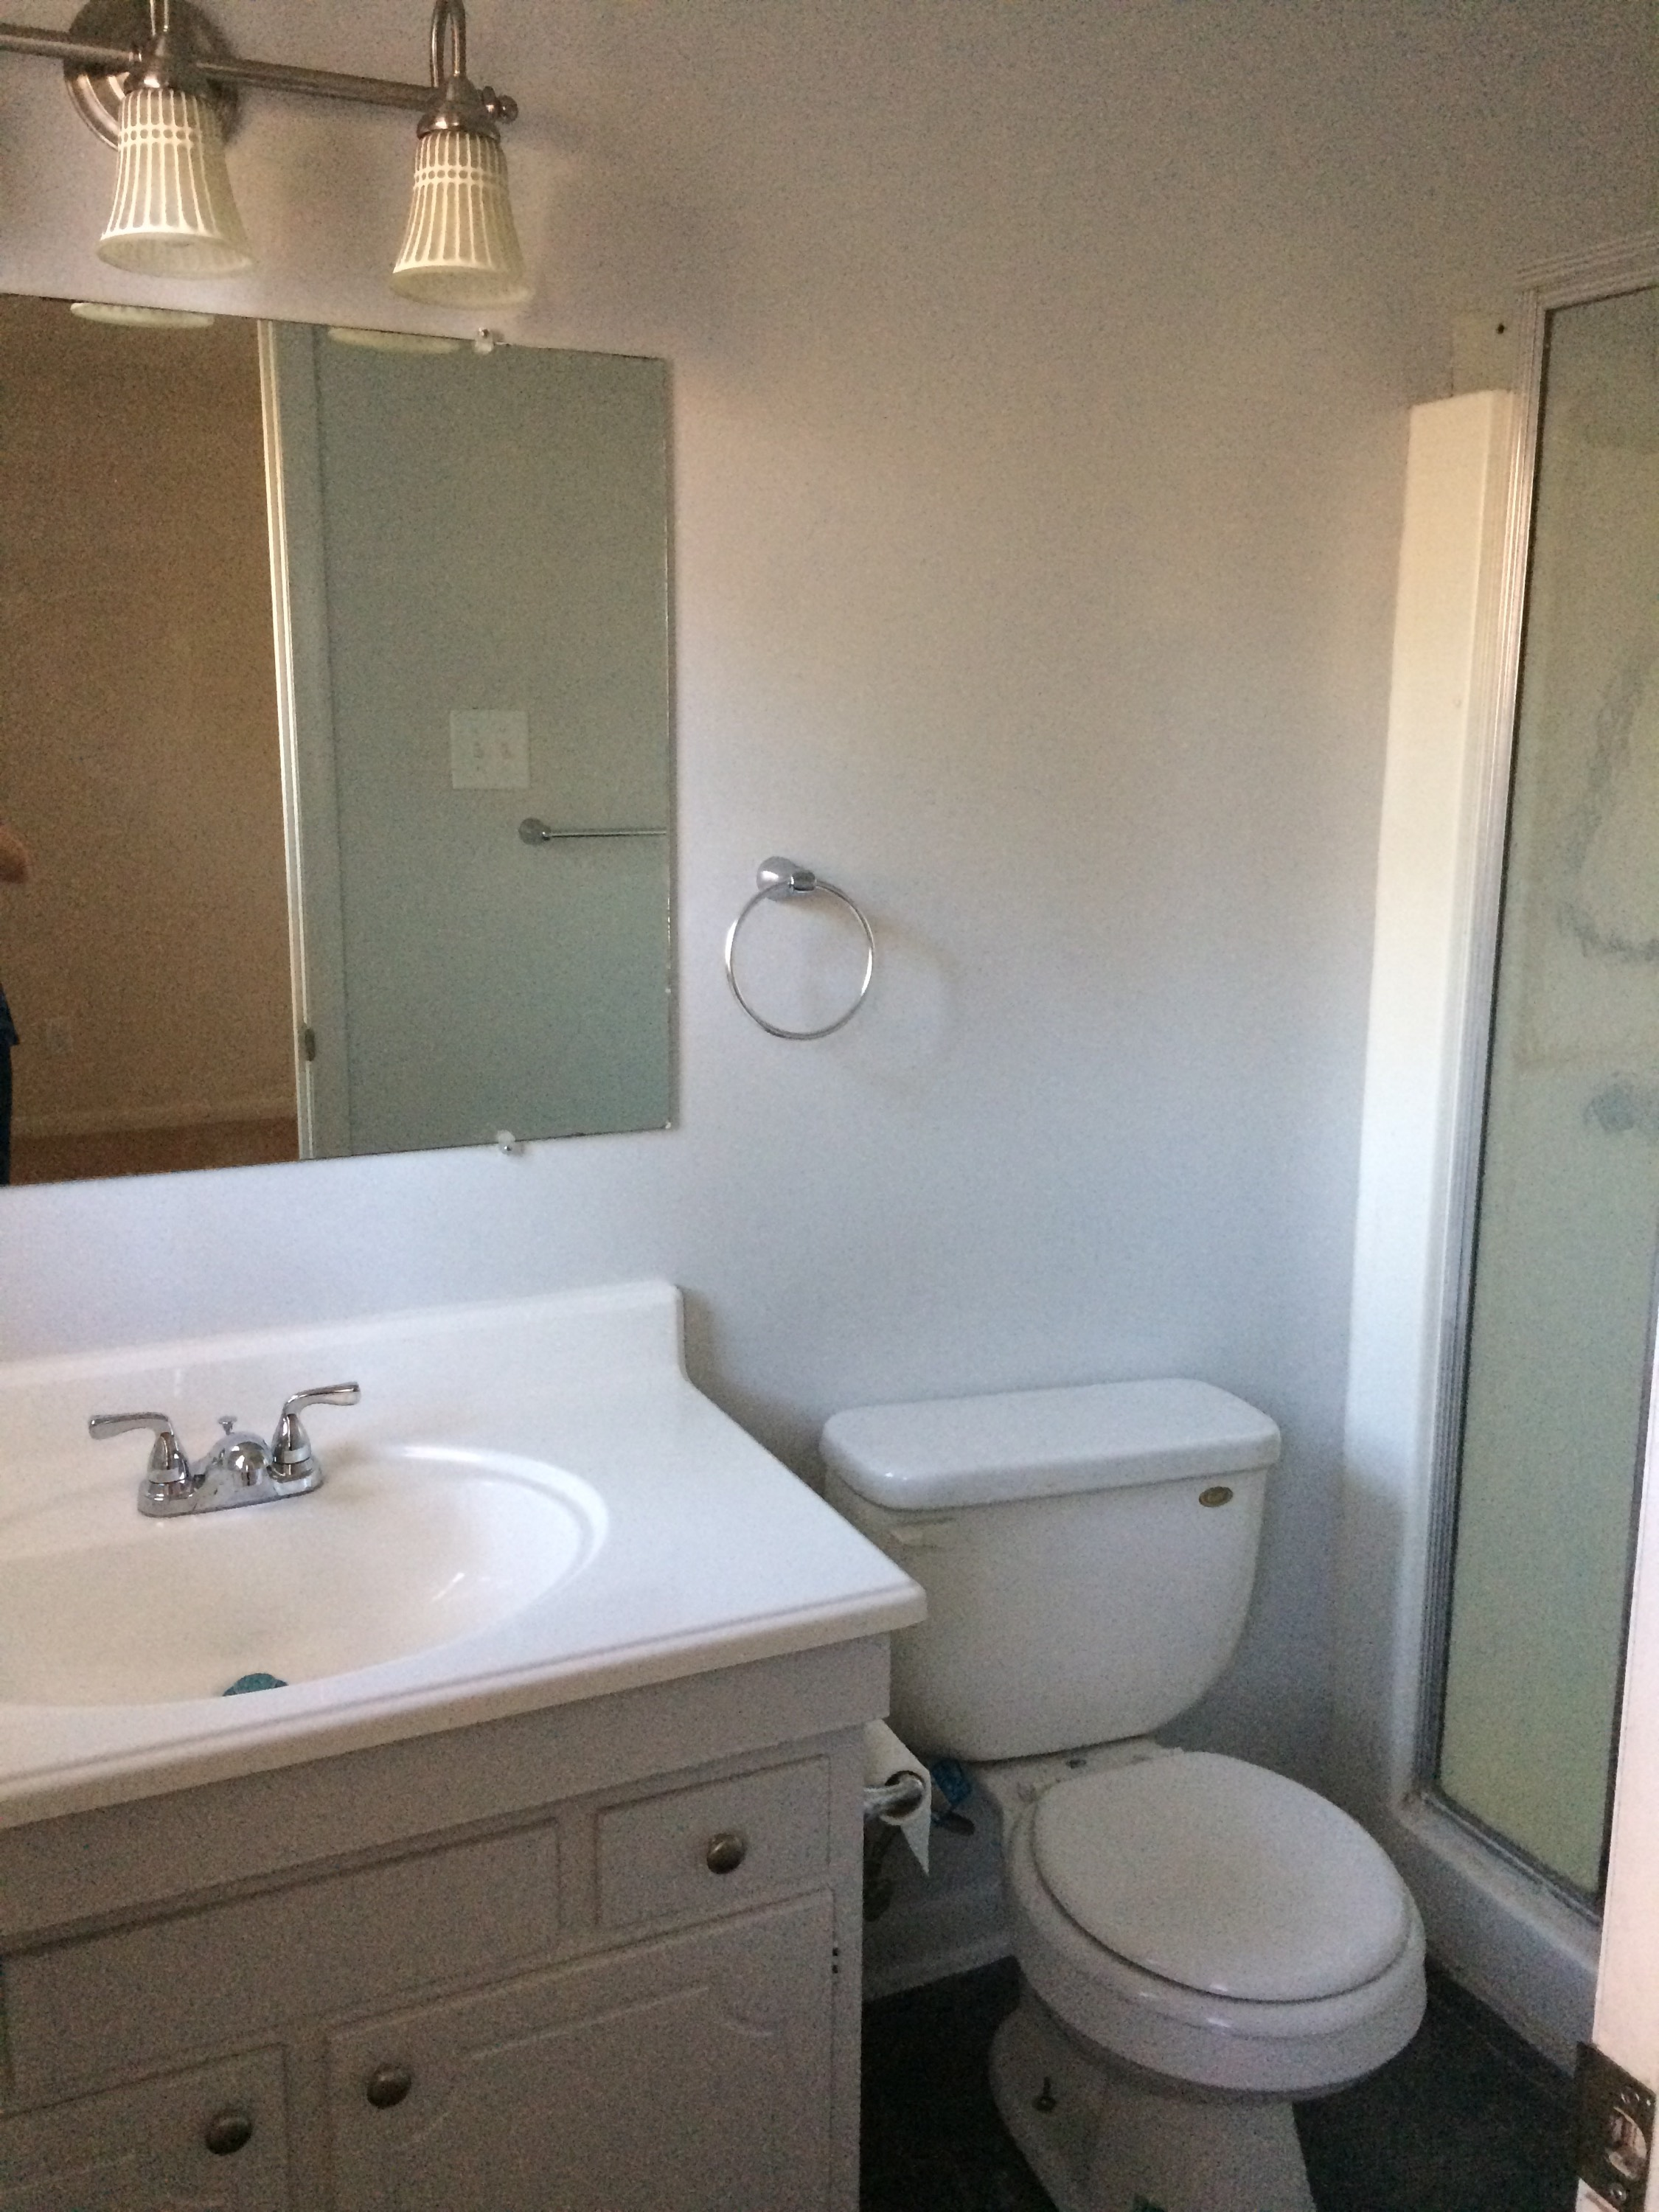 HOUSE for RENT at 1610 Diplomat - Master Bath - DanielsRents.com